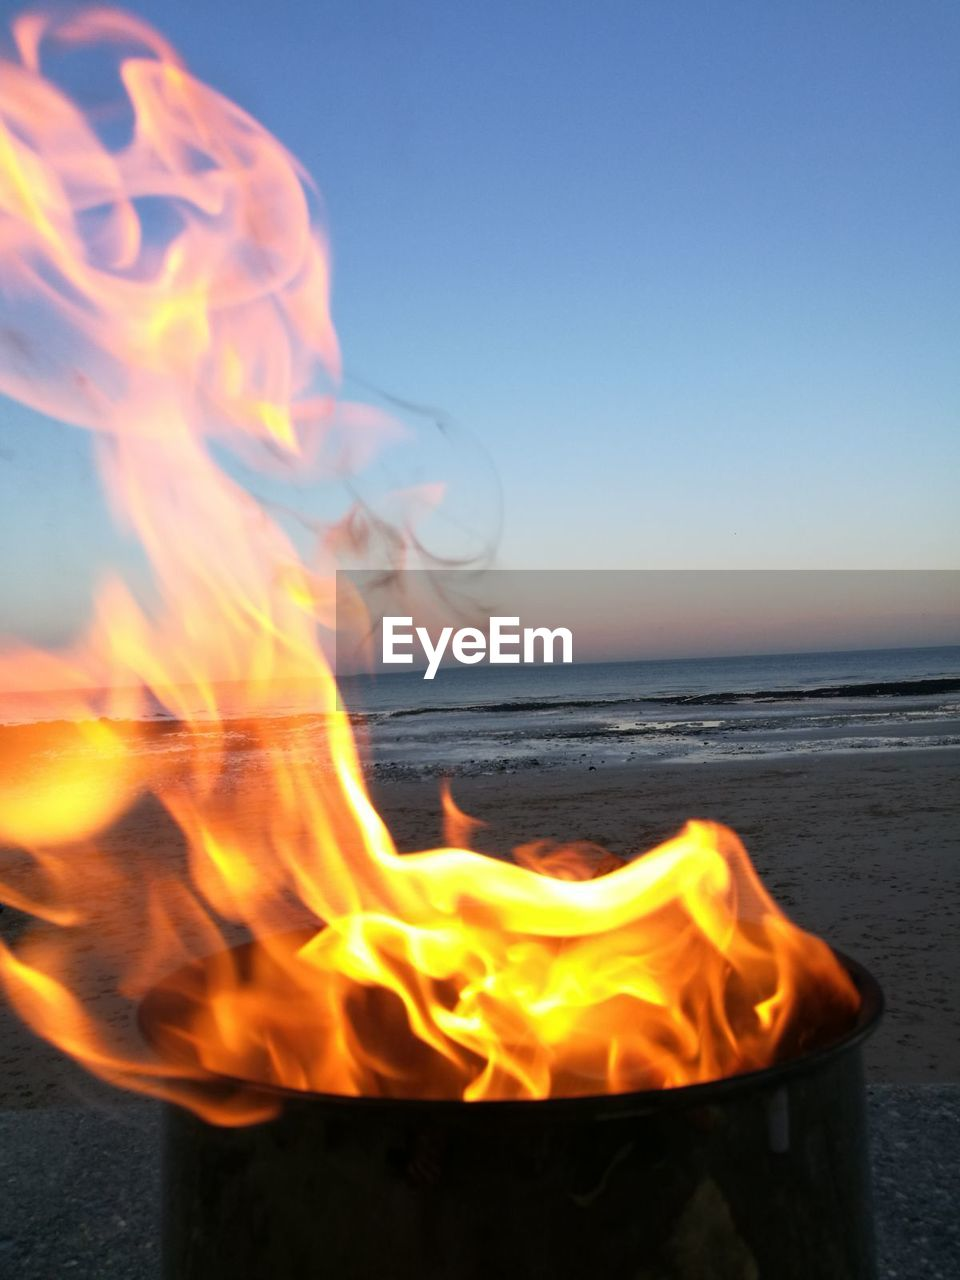 burning, flame, fire, fire - natural phenomenon, heat - temperature, nature, motion, water, orange color, sky, sea, land, beach, horizon over water, beauty in nature, blurred motion, sunset, yellow, glowing, no people, outdoors, bonfire